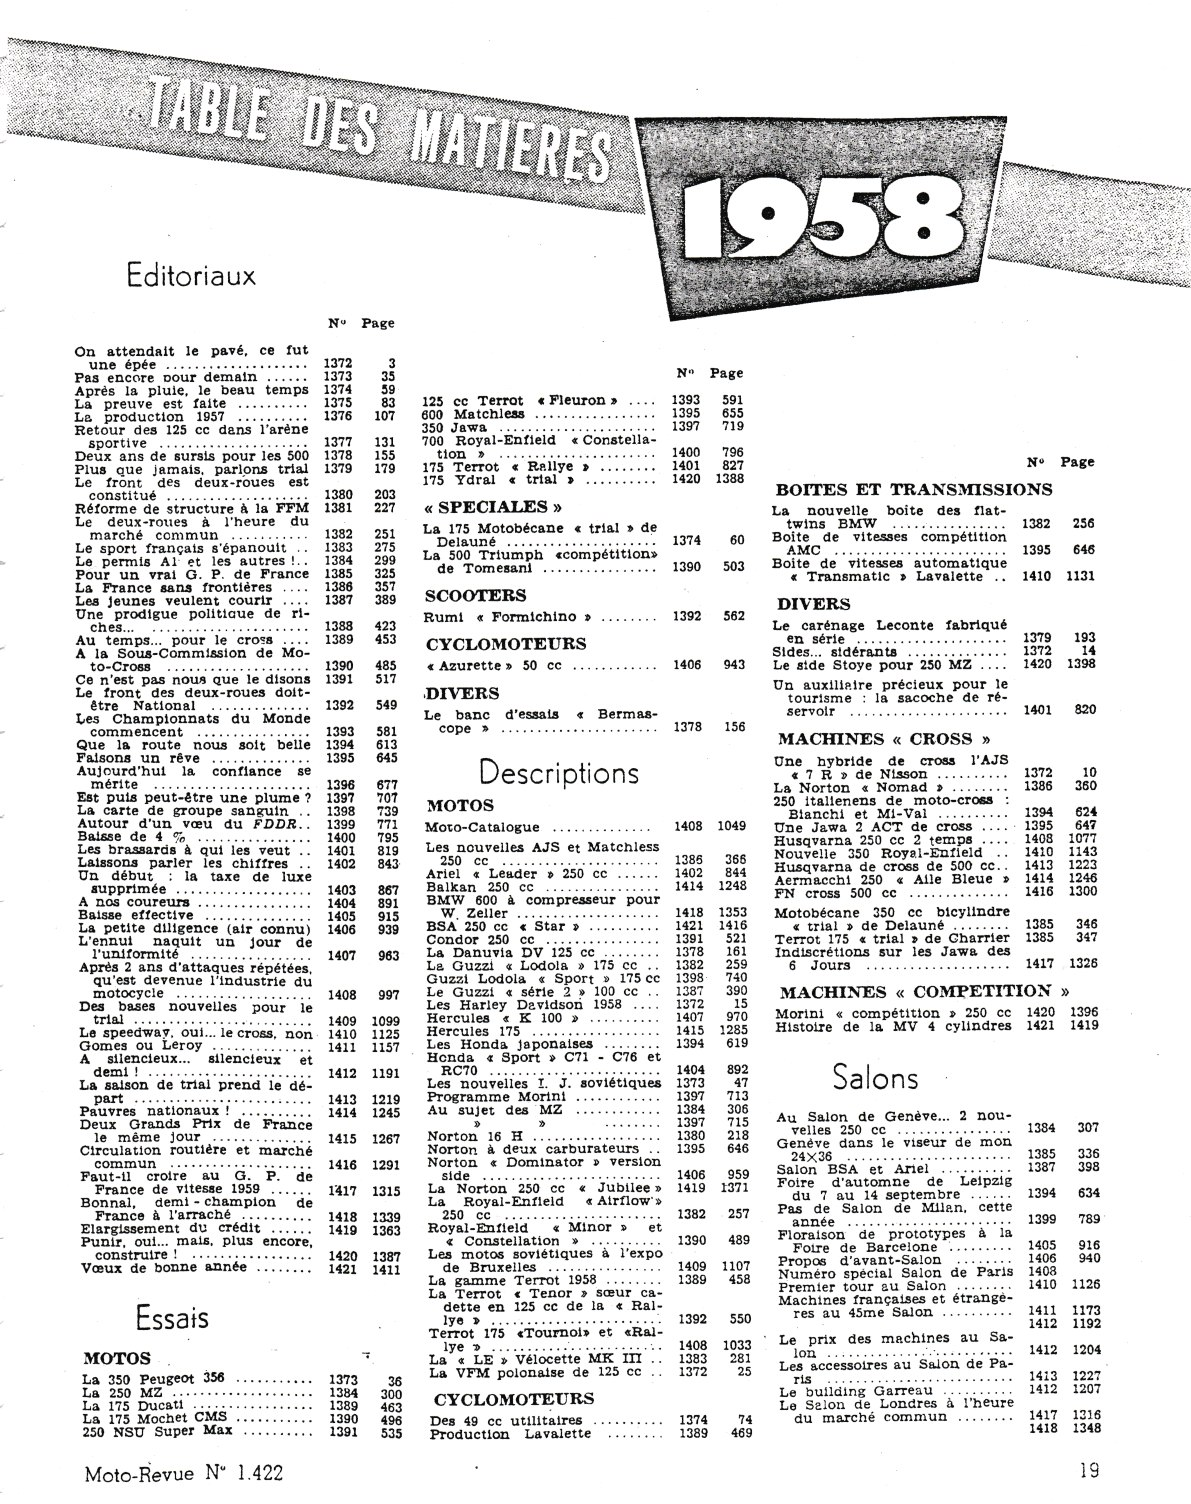 80 1958 page 1.jpg